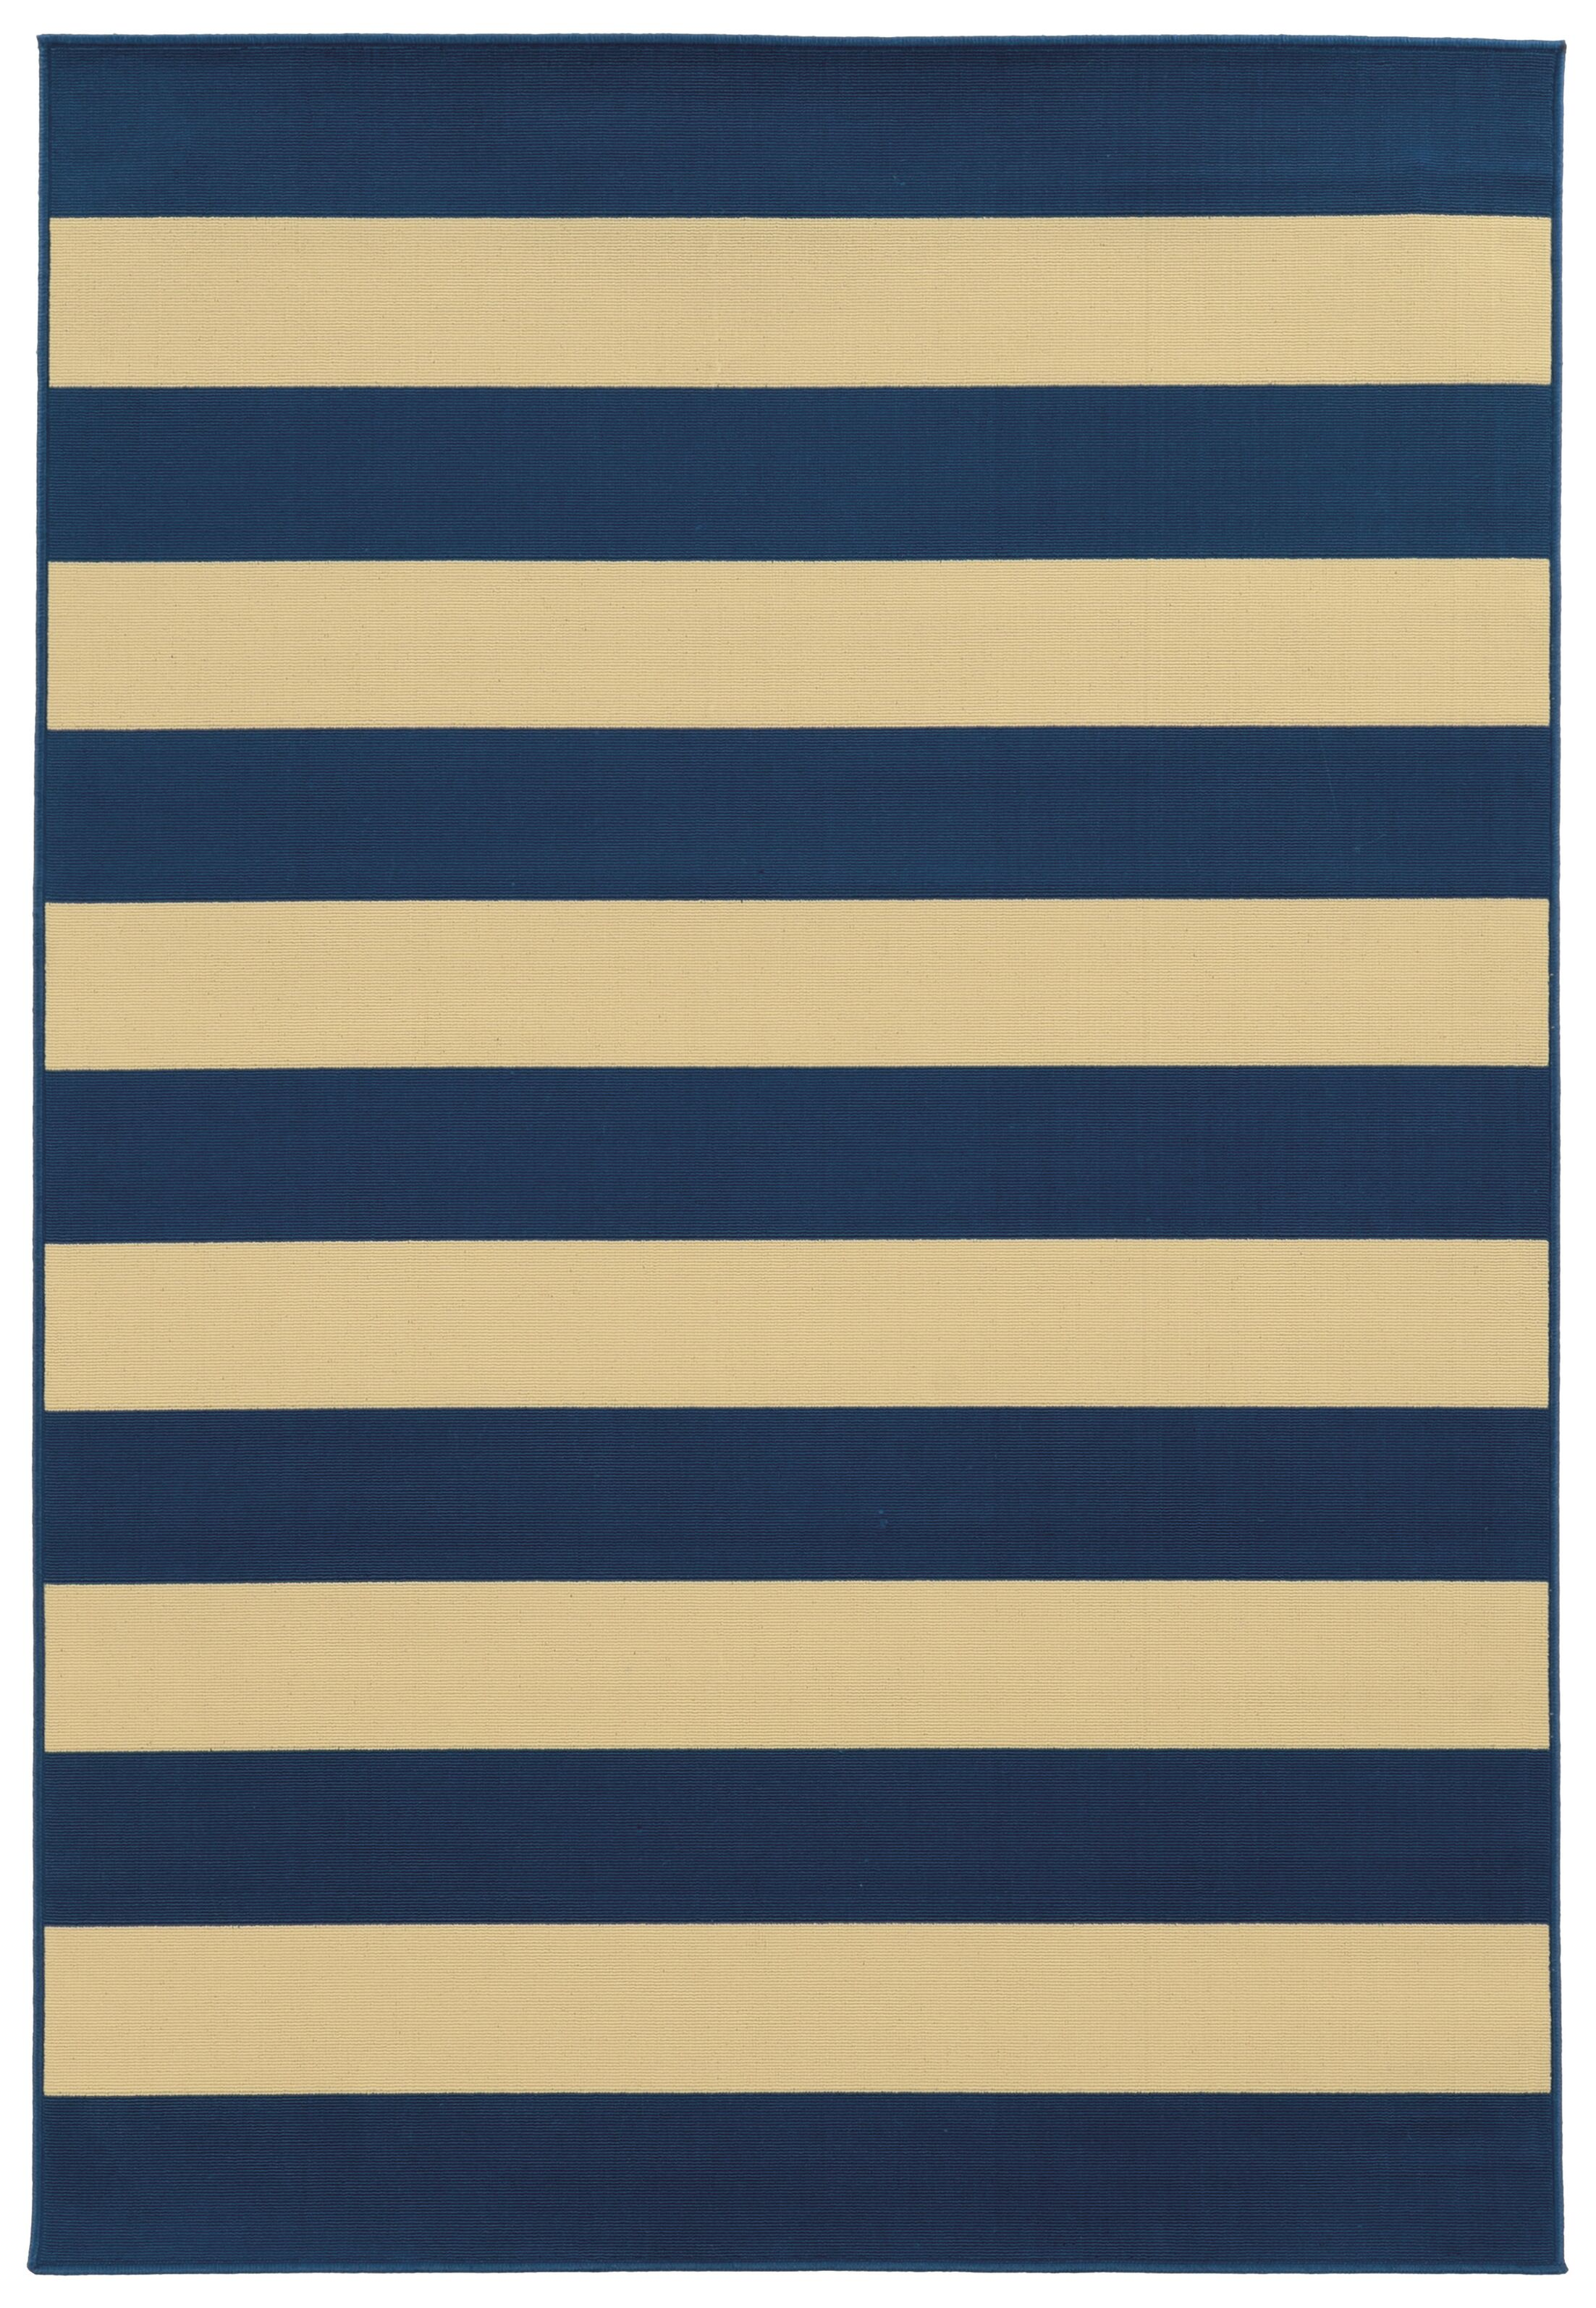 Alford Hand-Woven Dark Blue/Ivory Indoor/Outdoor Area Rug Rug Size: Rectangle 7'10